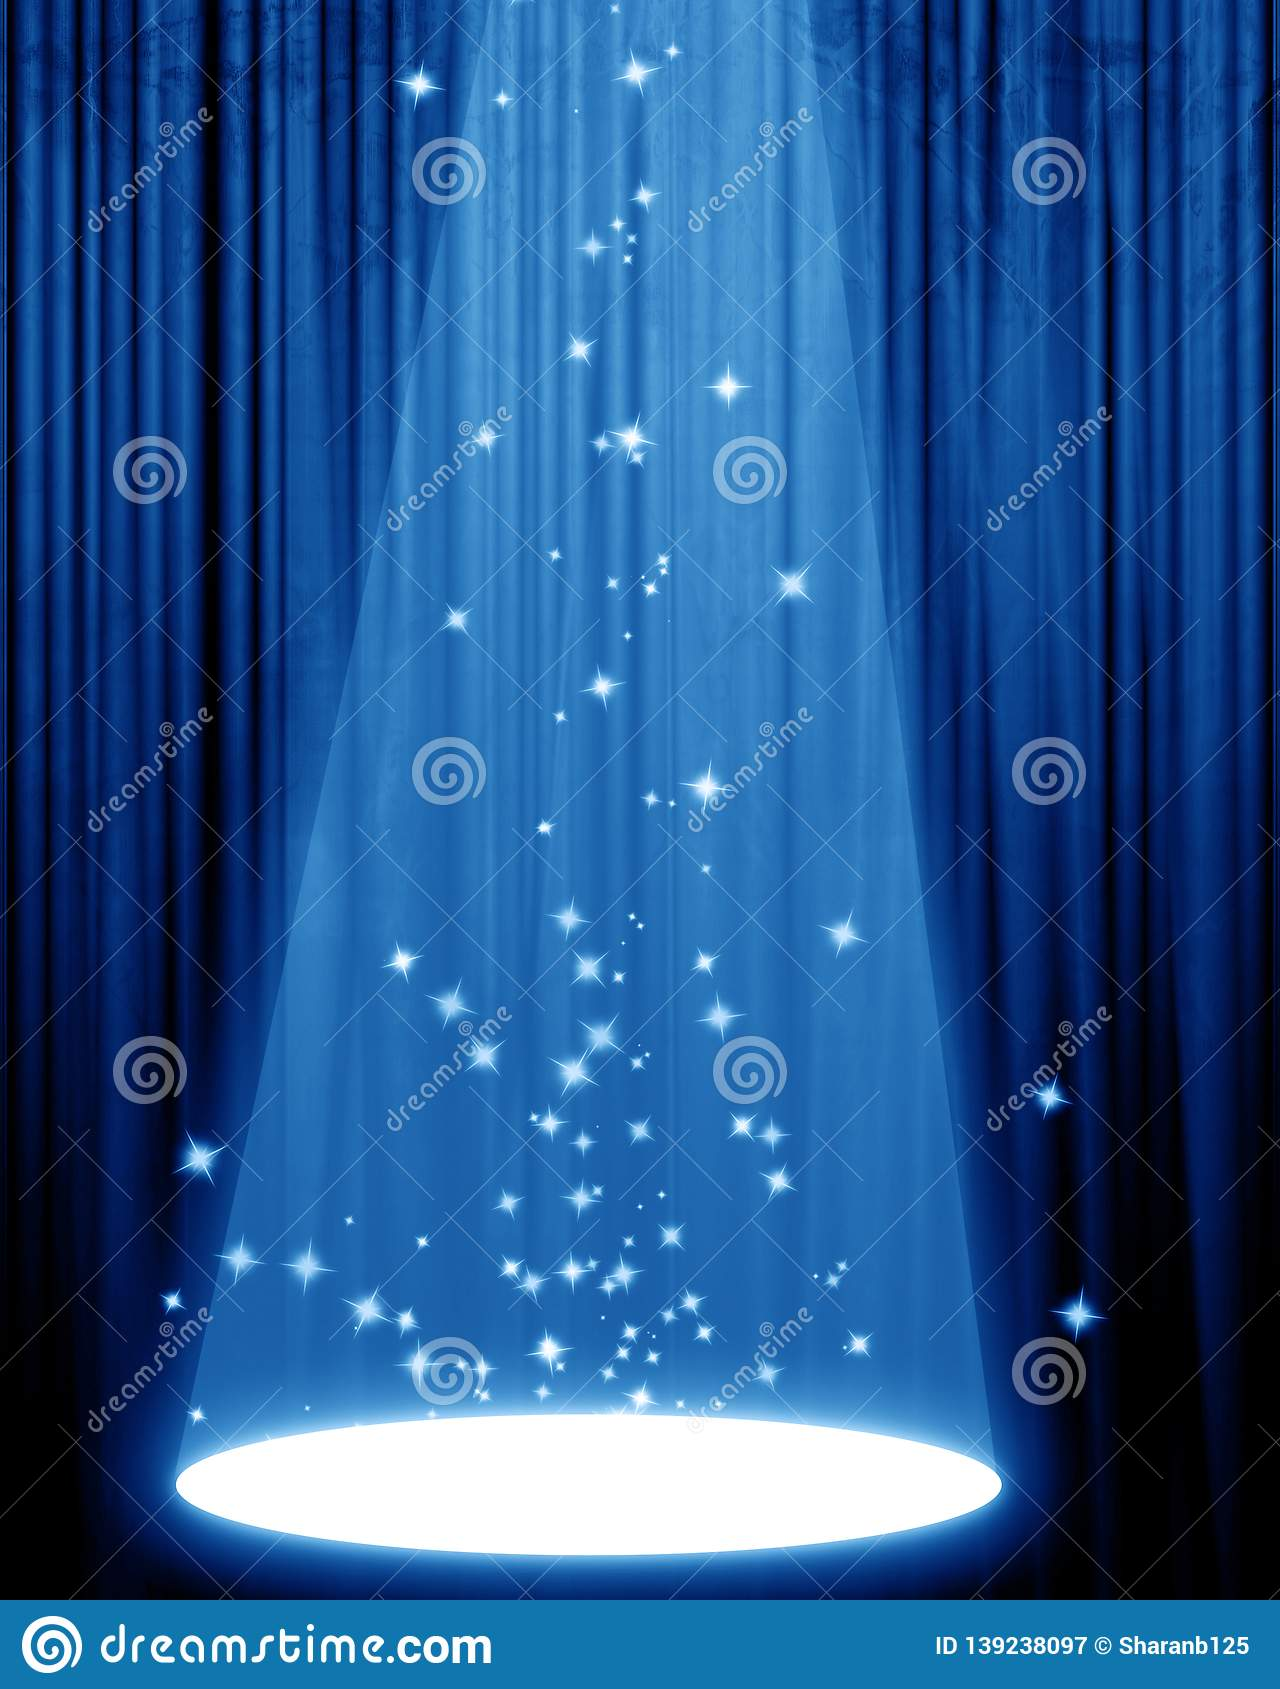 Sparkling white glitters with abstract blue background